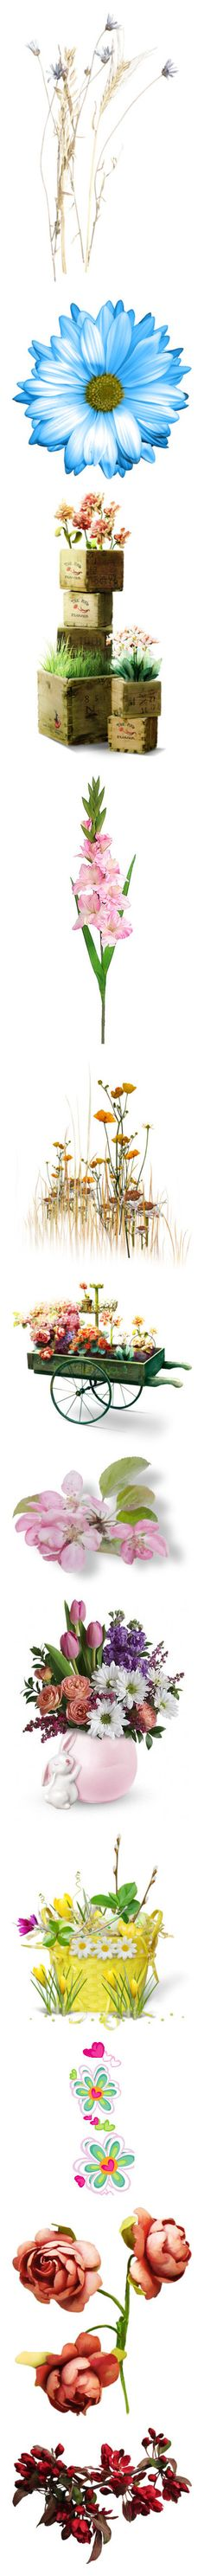 """Mary, Mary Quite Contrary, How Does Your Garden Grow?"" by carla-altum ❤ liked on Polyvore featuring filler, flowers, backgrounds, fillers, garden, effects, embellishment, pink, grass and autumn"